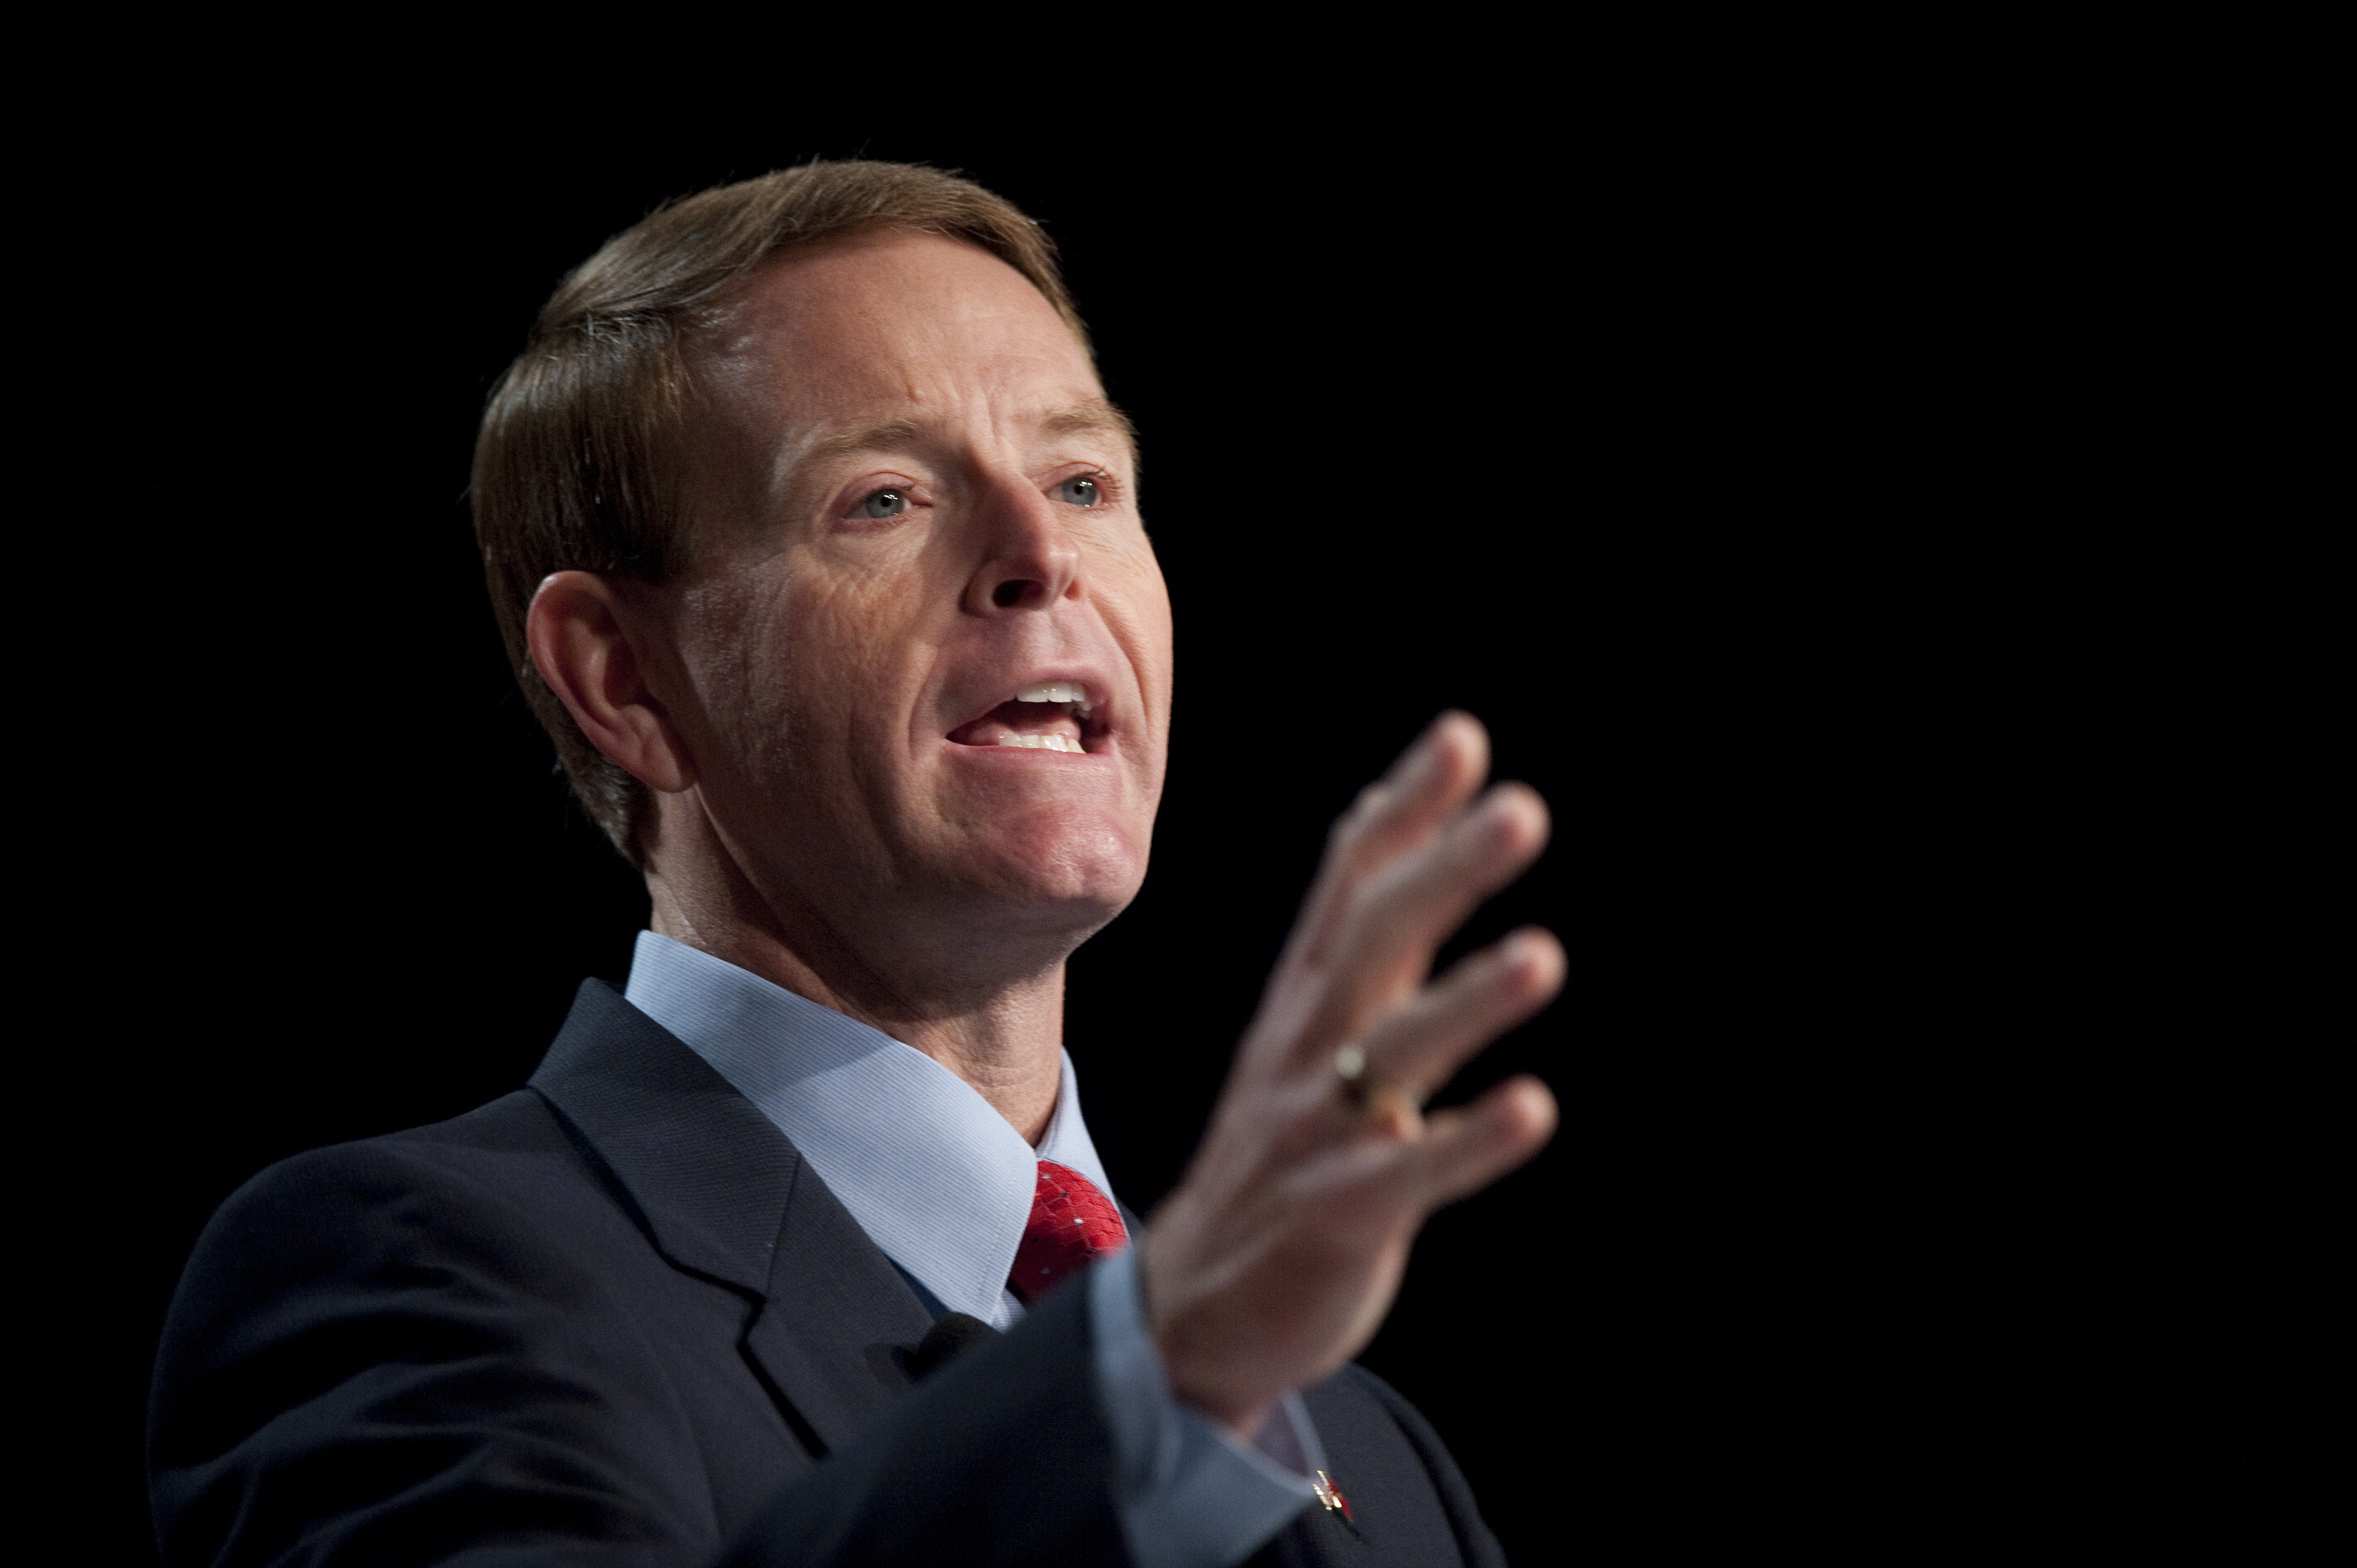 Tony Perkins, president of the Family Research Council, speaks at the Family Research Council's Values Voter Summit in Washington on Oct. 7, 2011.